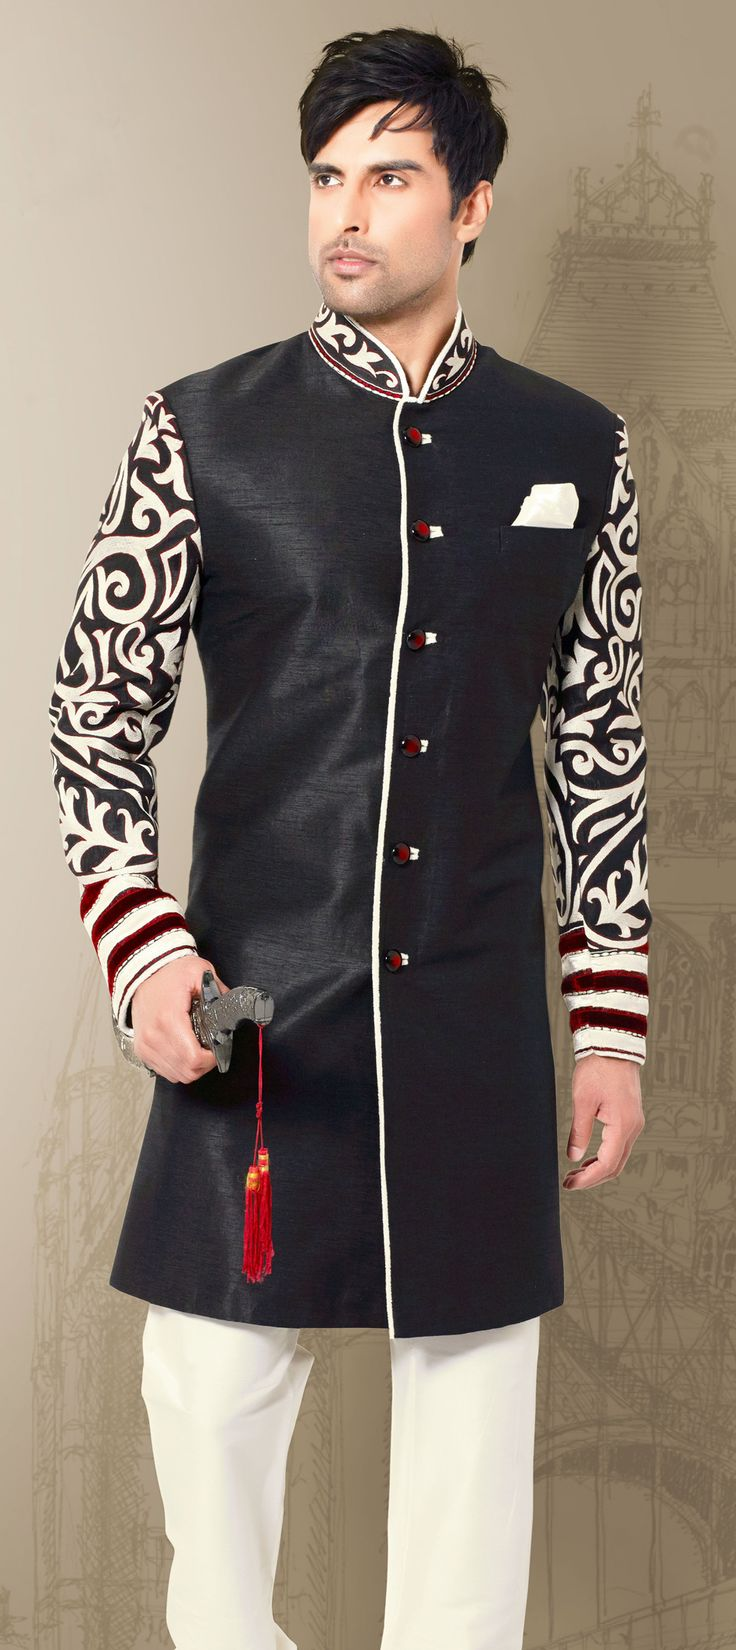 Ethnic Fashion Online Store: 500045: Rock The #monochrome, Men! Check Out This New